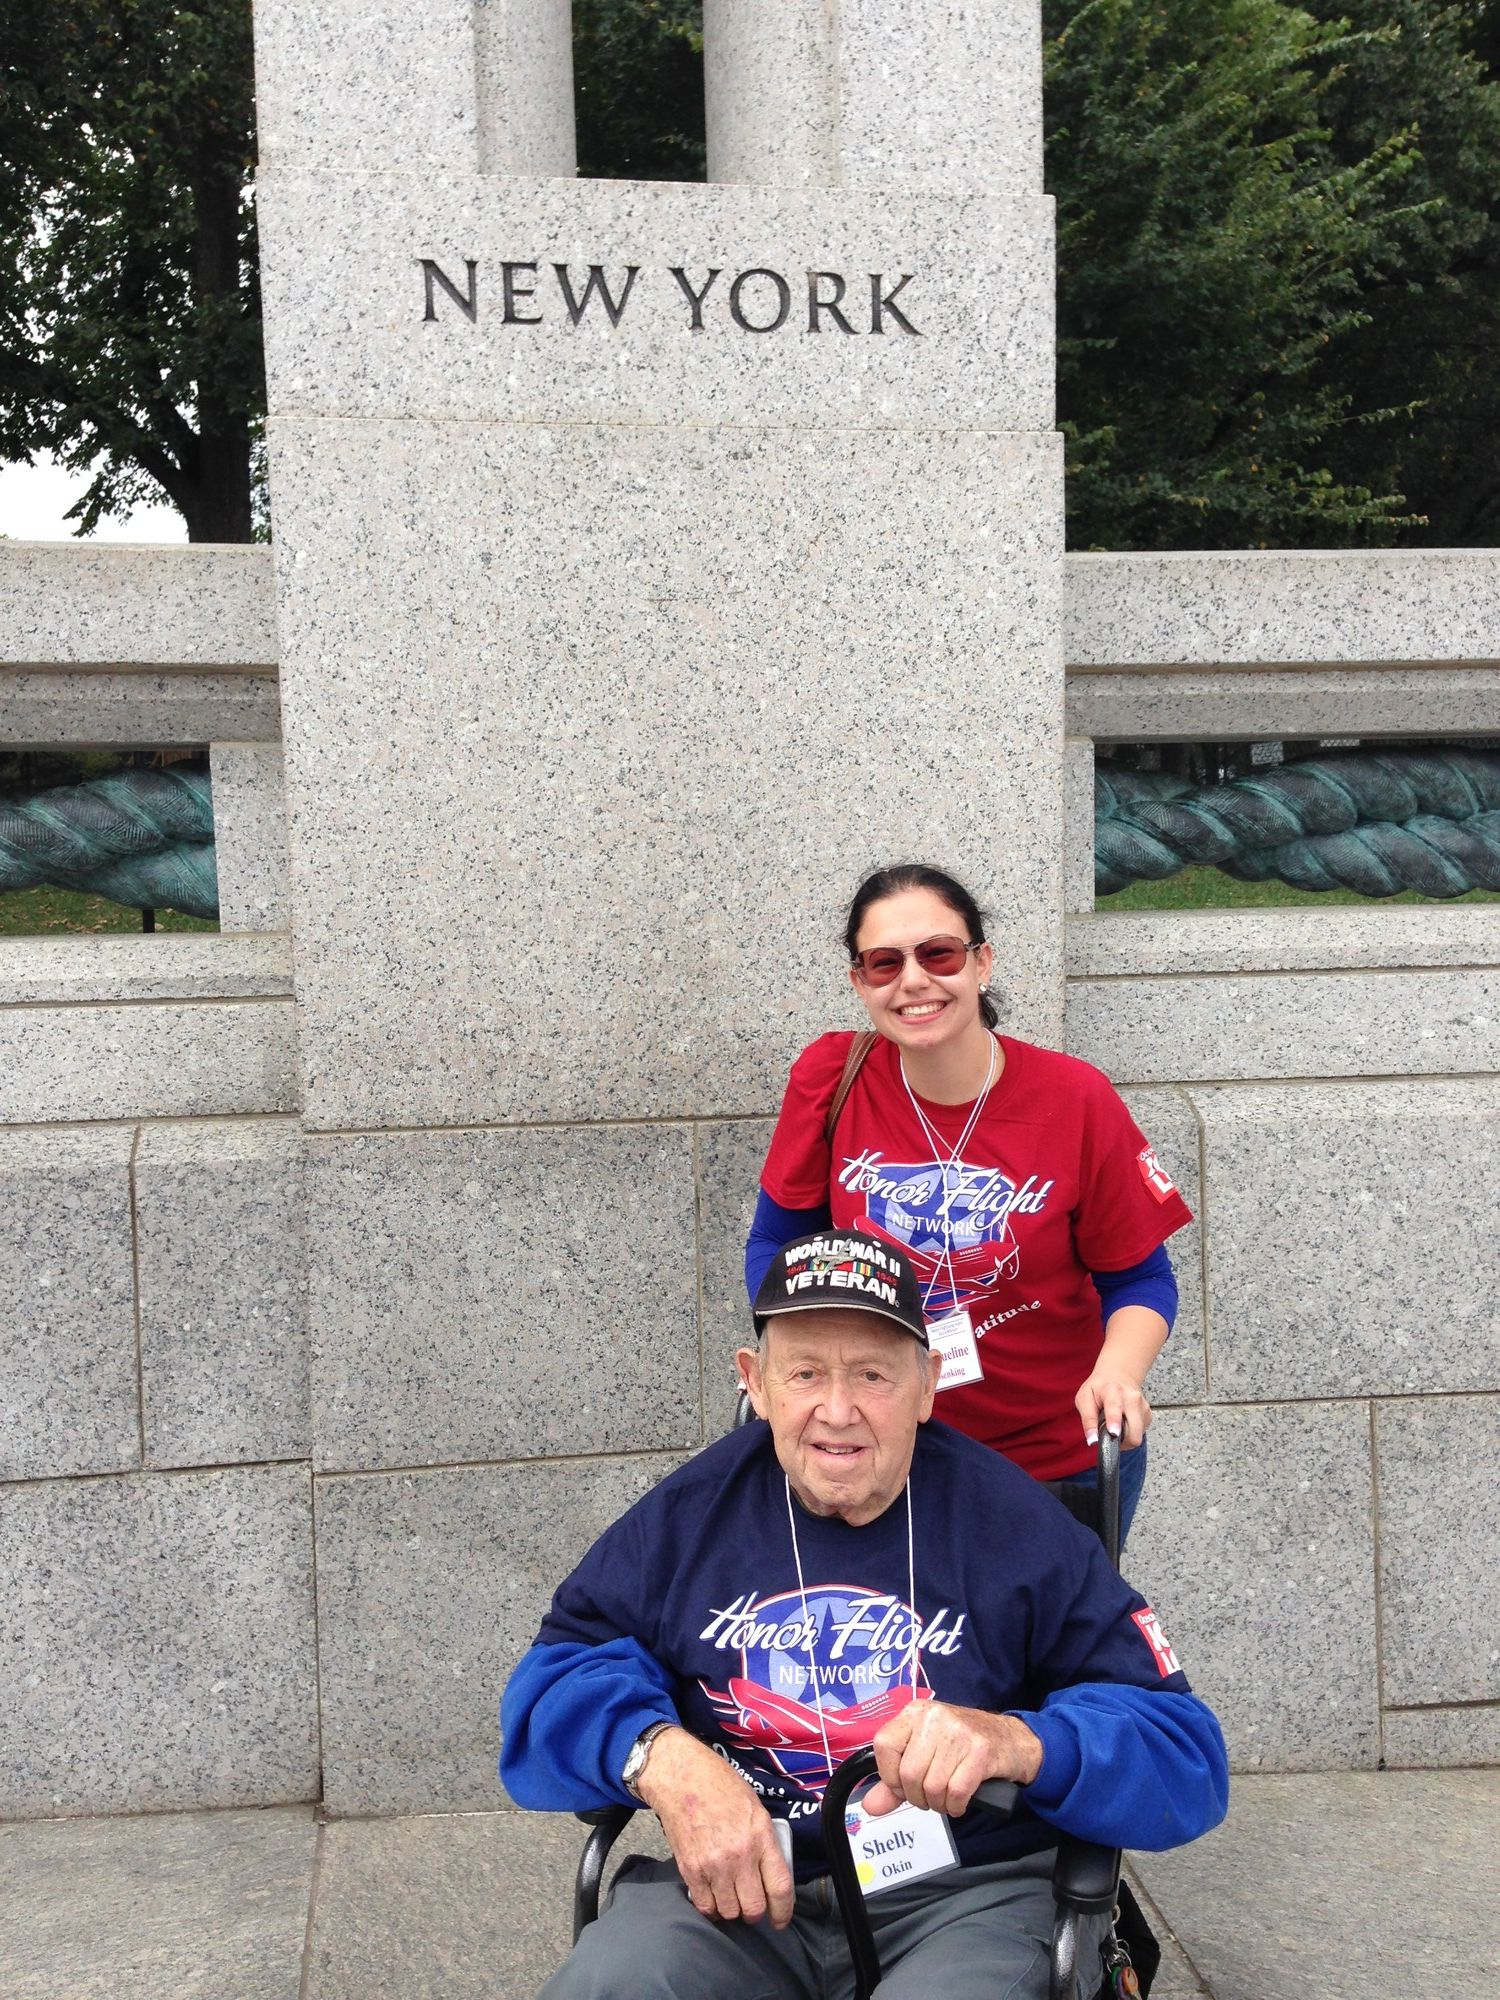 Jacqueline Rosenking, 18, with Levittown native and World War II veteran Sheldon Okin at the National World War II Memorial in Washington, D.C., during an Honor Flight trip in September.